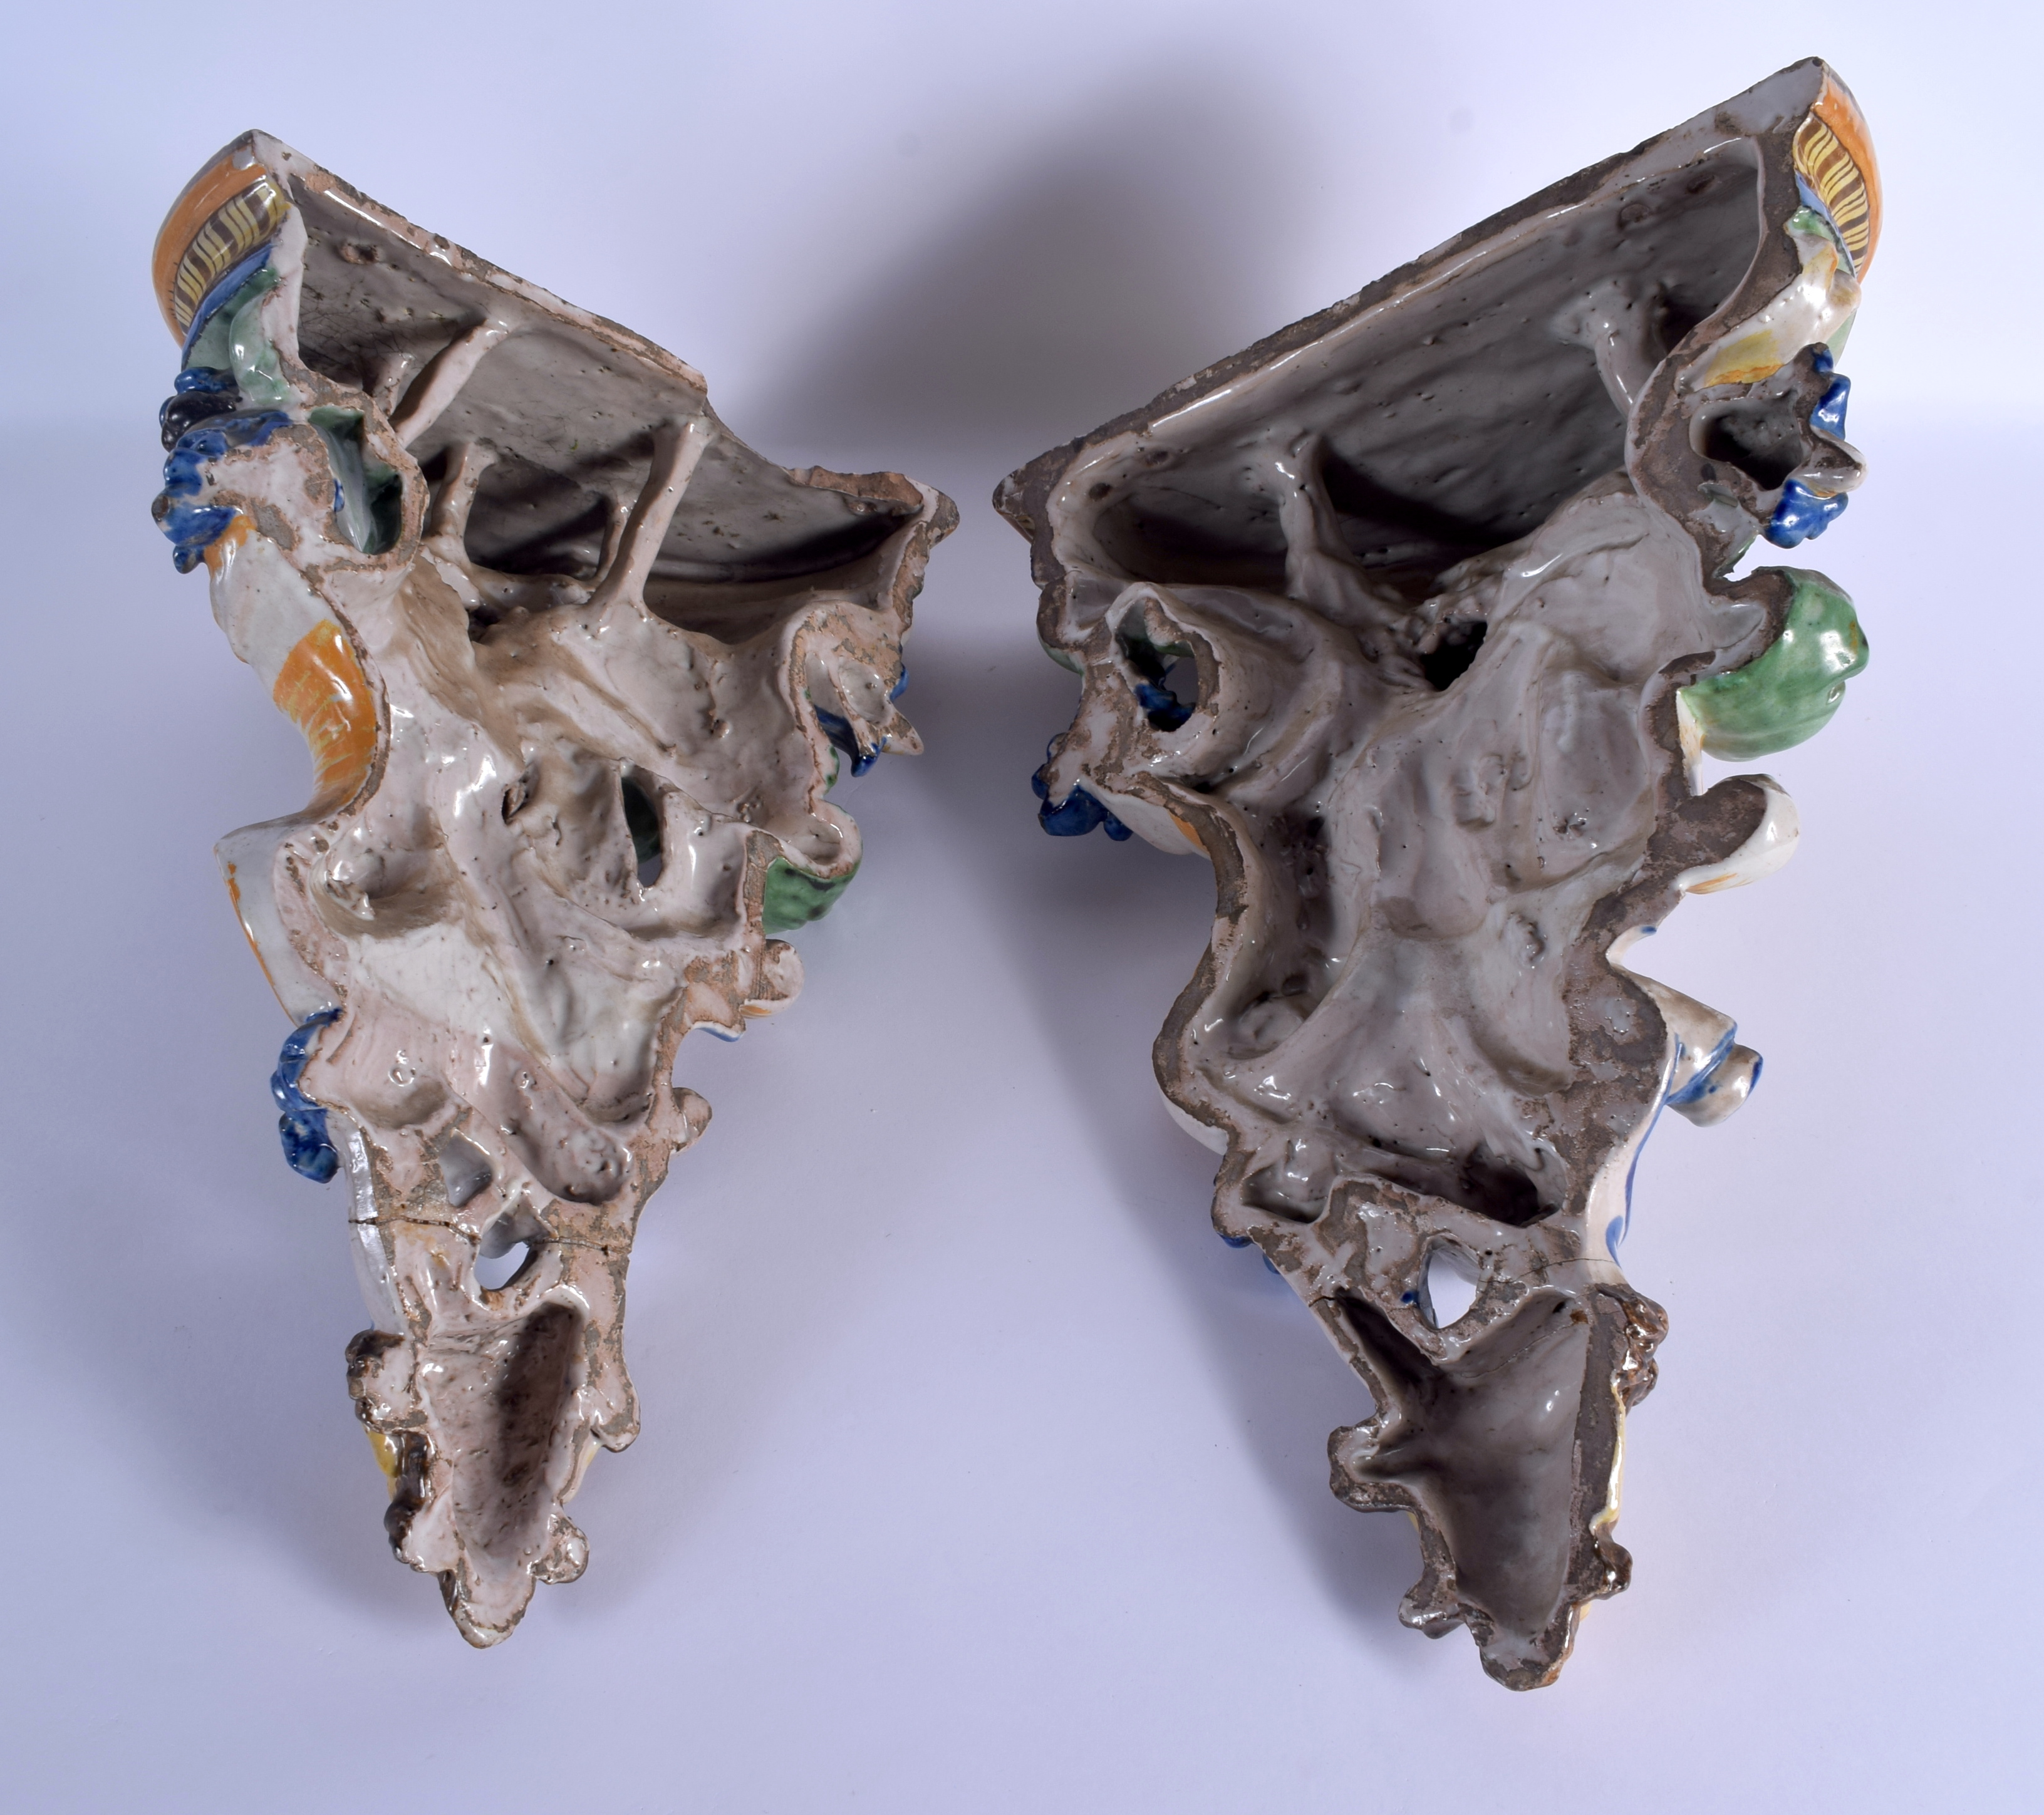 A LARGE PAIR OF 19TH CENTURY ITALIAN MAJOLICA POTTERY WALL BRACKETS formed with figures over mask he - Image 6 of 7